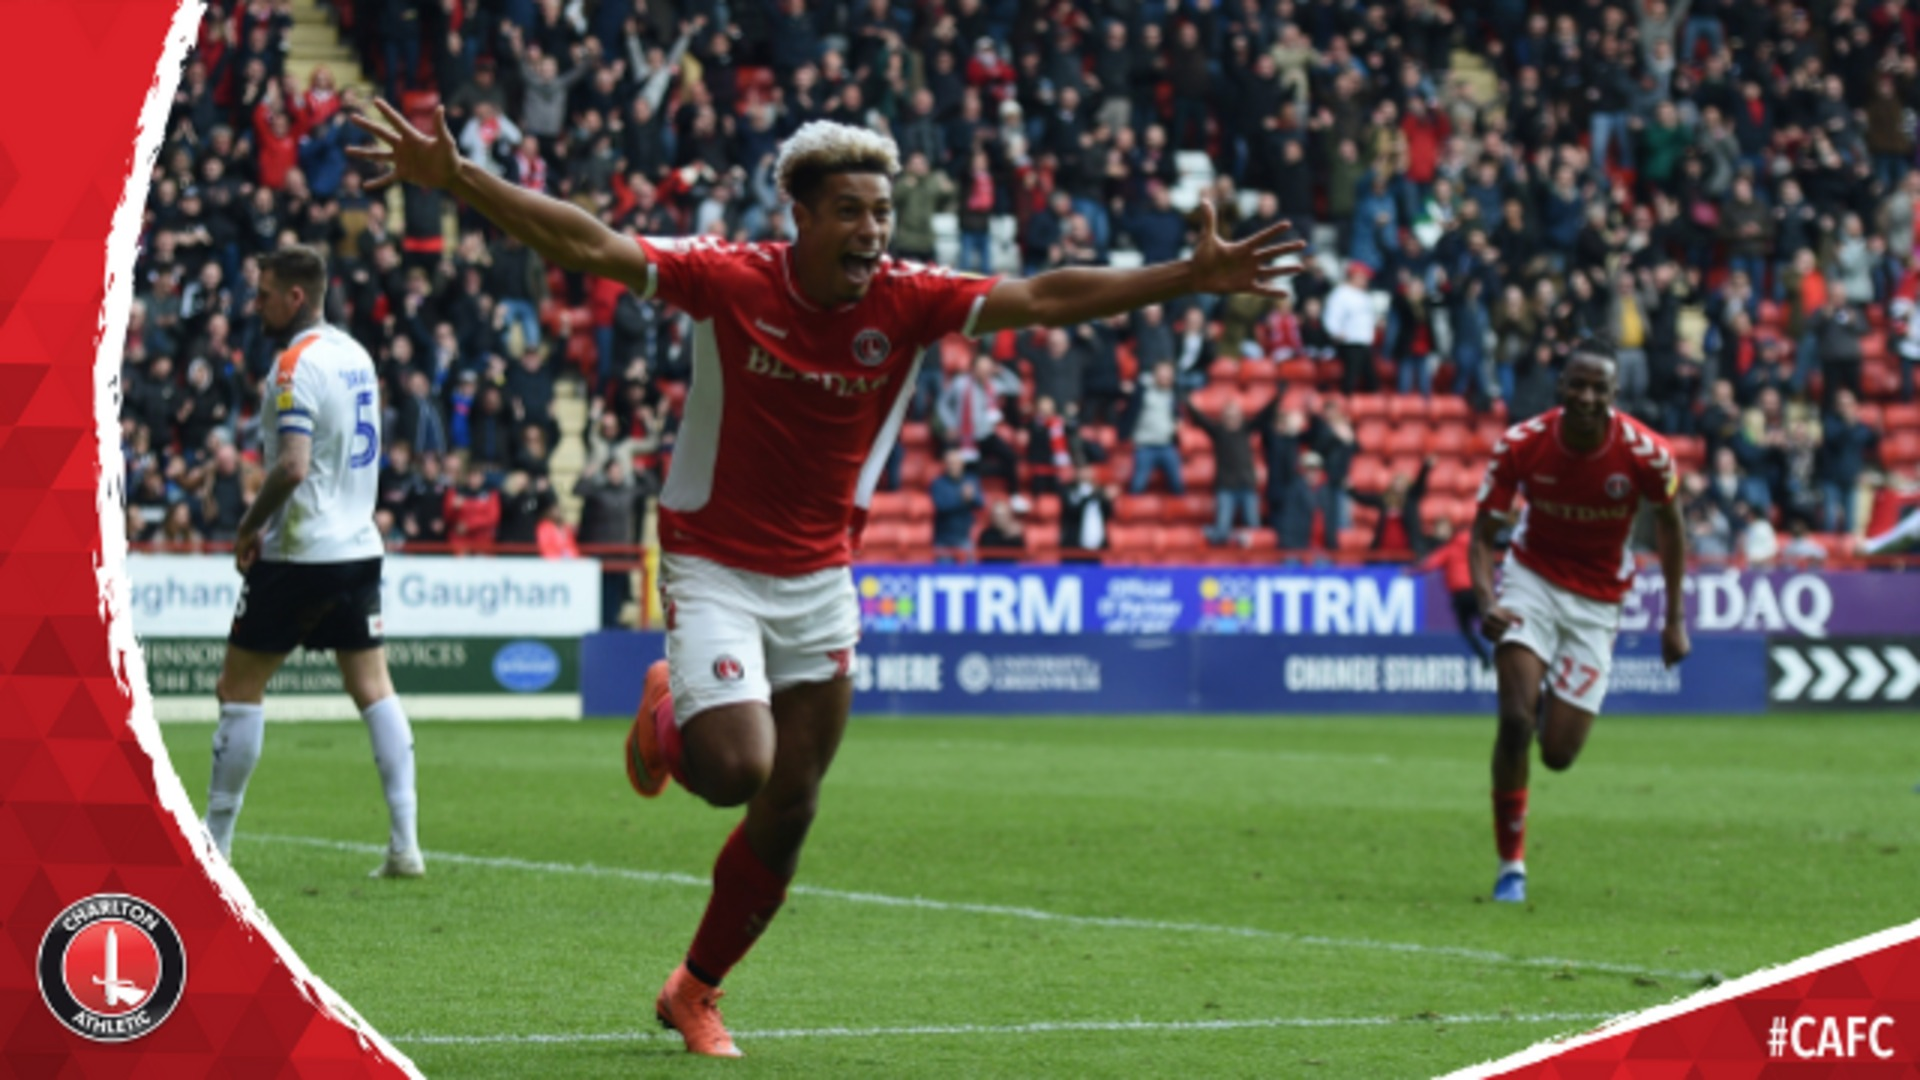 ALL ANGLES COVERED | Charlton 3 Luton Town 1 (April 2019)